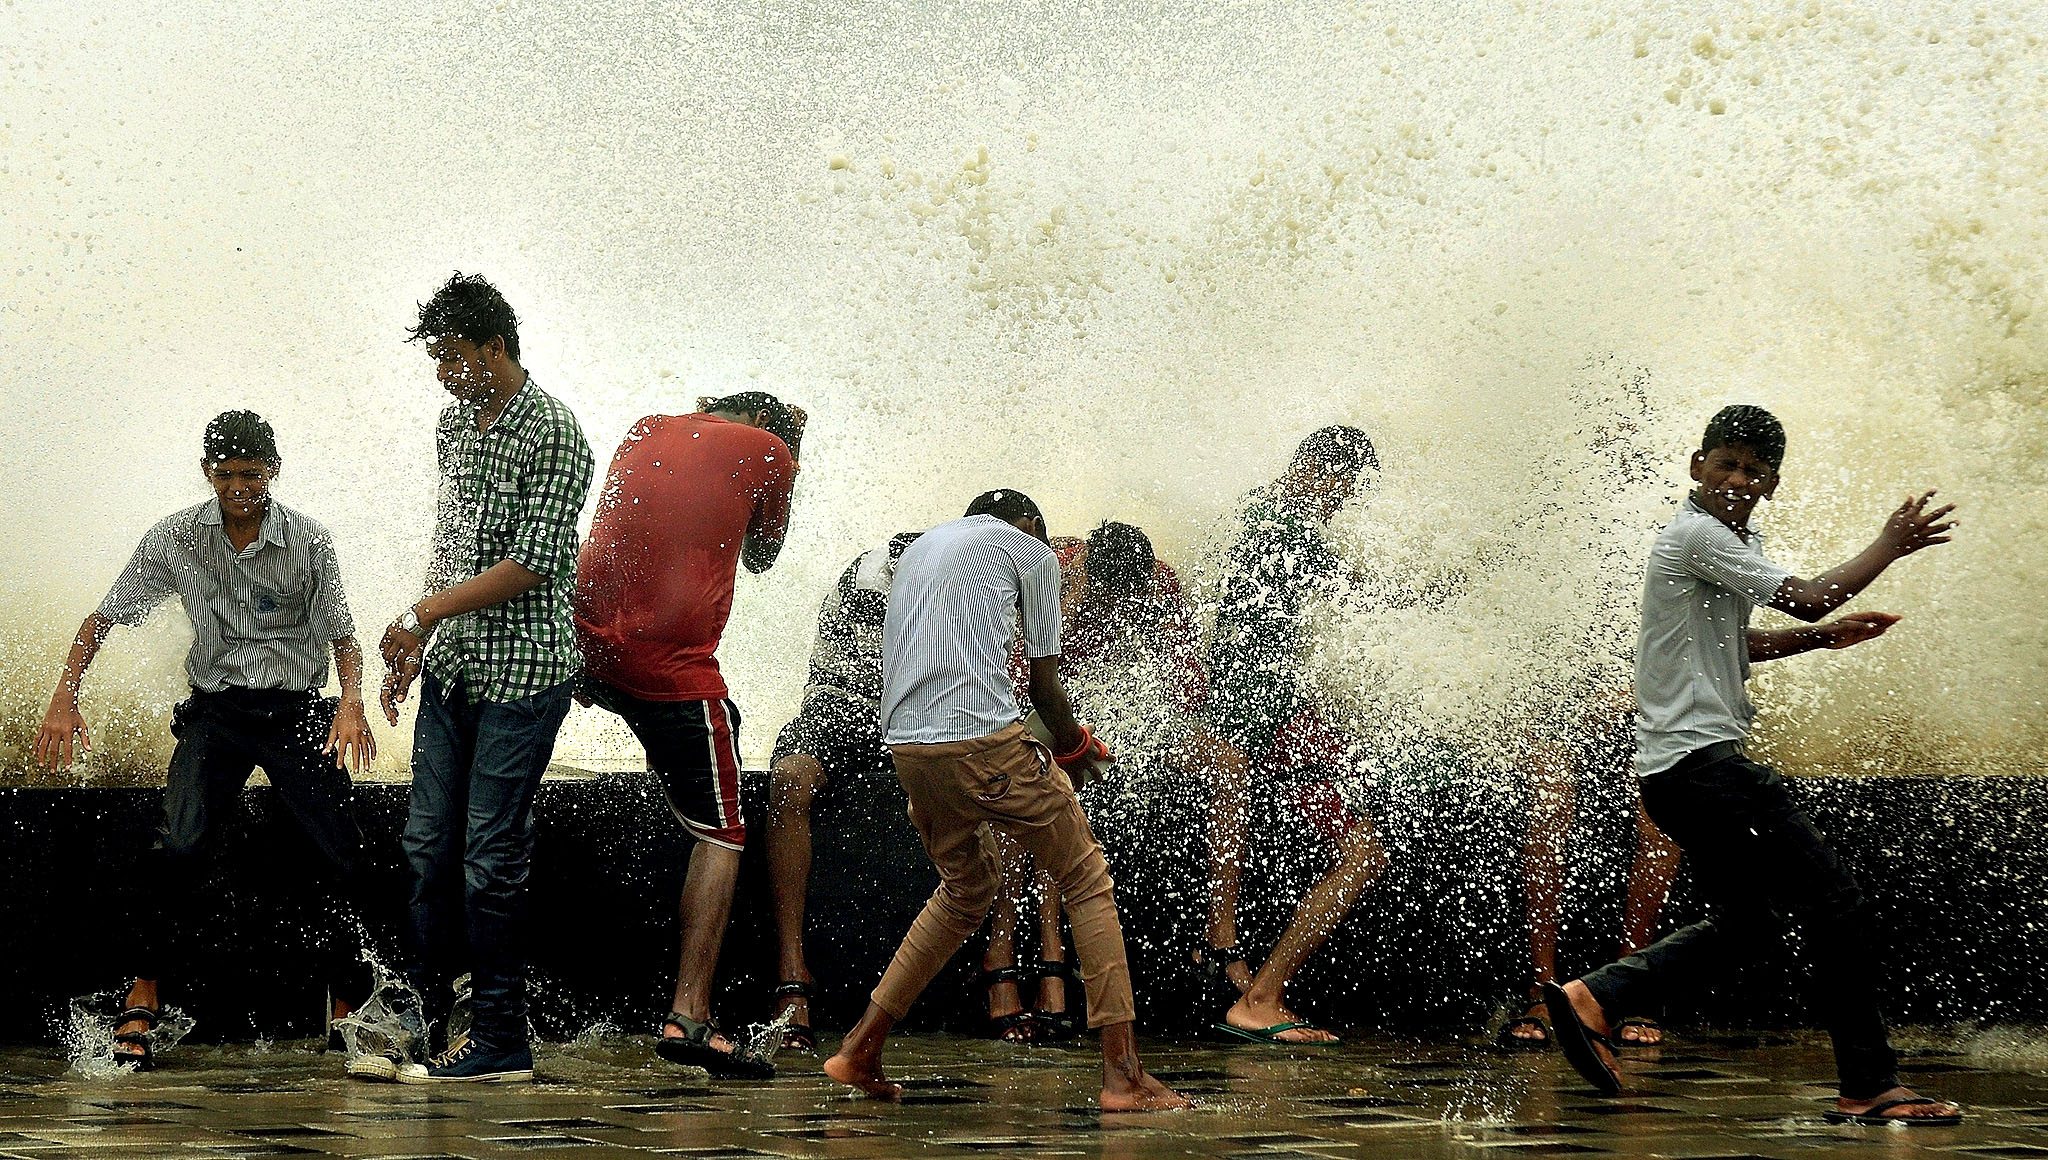 Indians enjoy getting splashed by breaking waves during high tide at the sea front in Mumbai on July 14, 2014. The monsoon rains, which usually hit India from June to September, are crucial for farmers whose crops feed hundreds of millions of people.